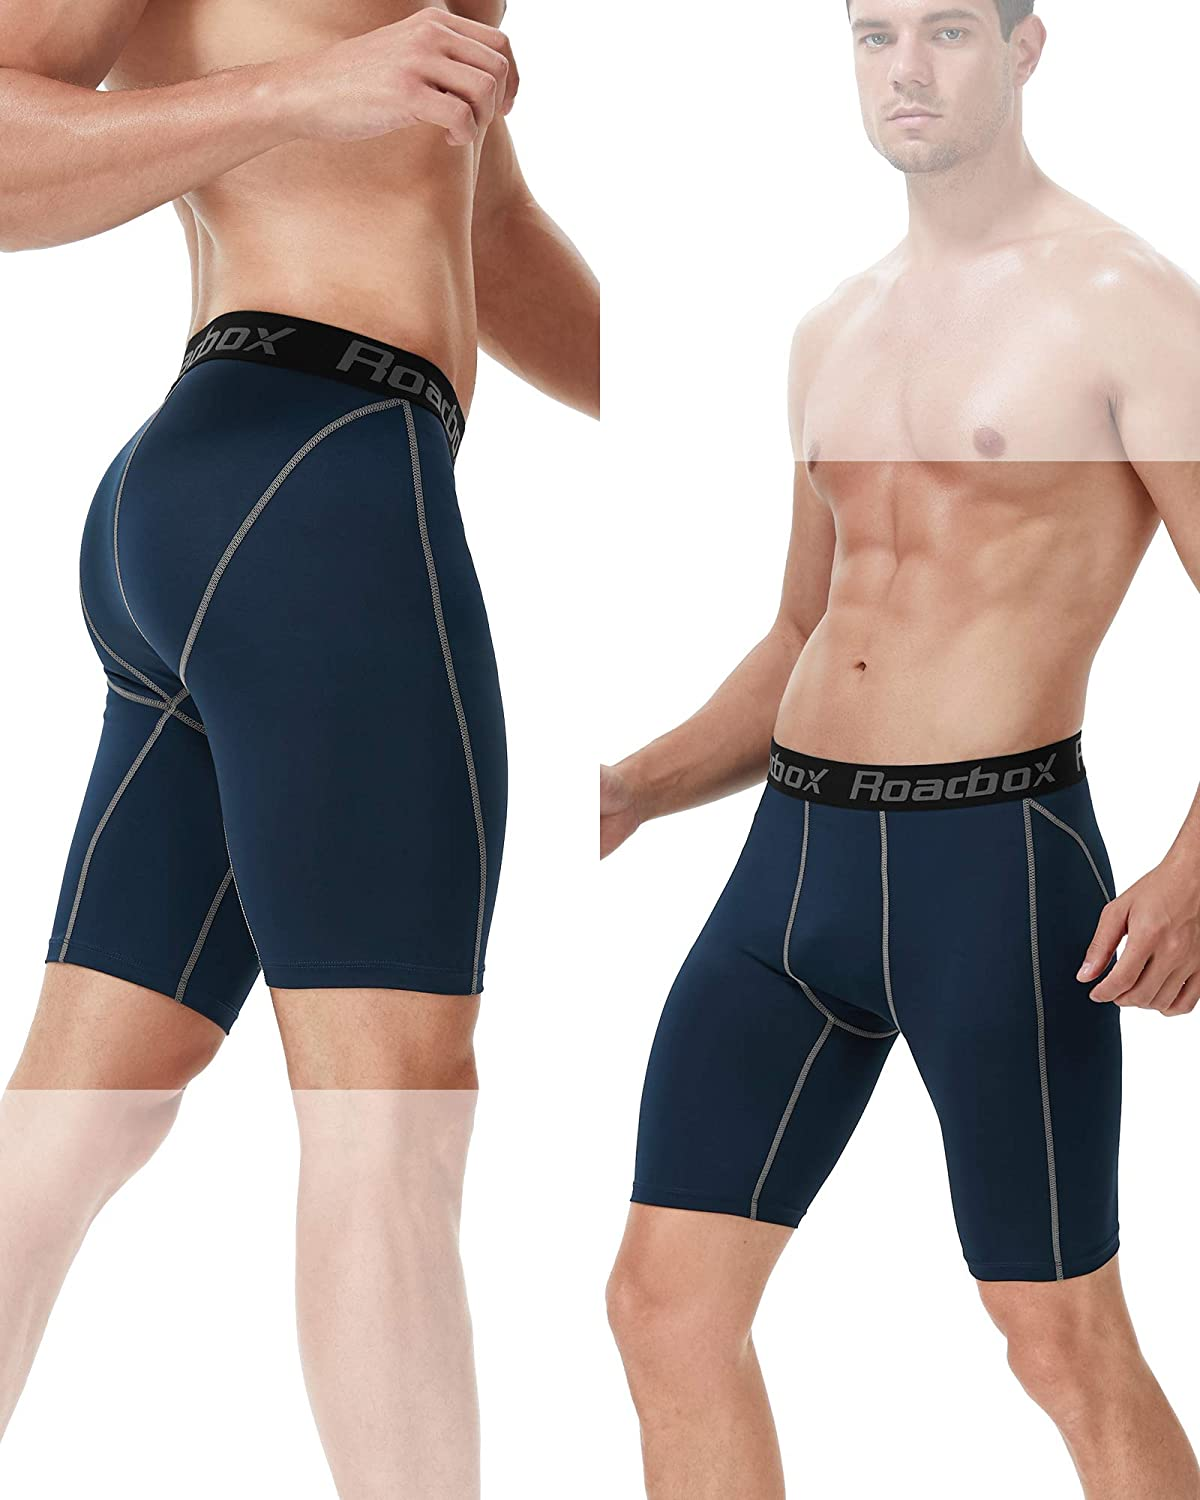 Cycling Gym Rugby Quick-Drying Fabric Protect Leg Skin Roadbox Compression Shorts Men 3 Pack Base Layer Shorts Shorts for Running